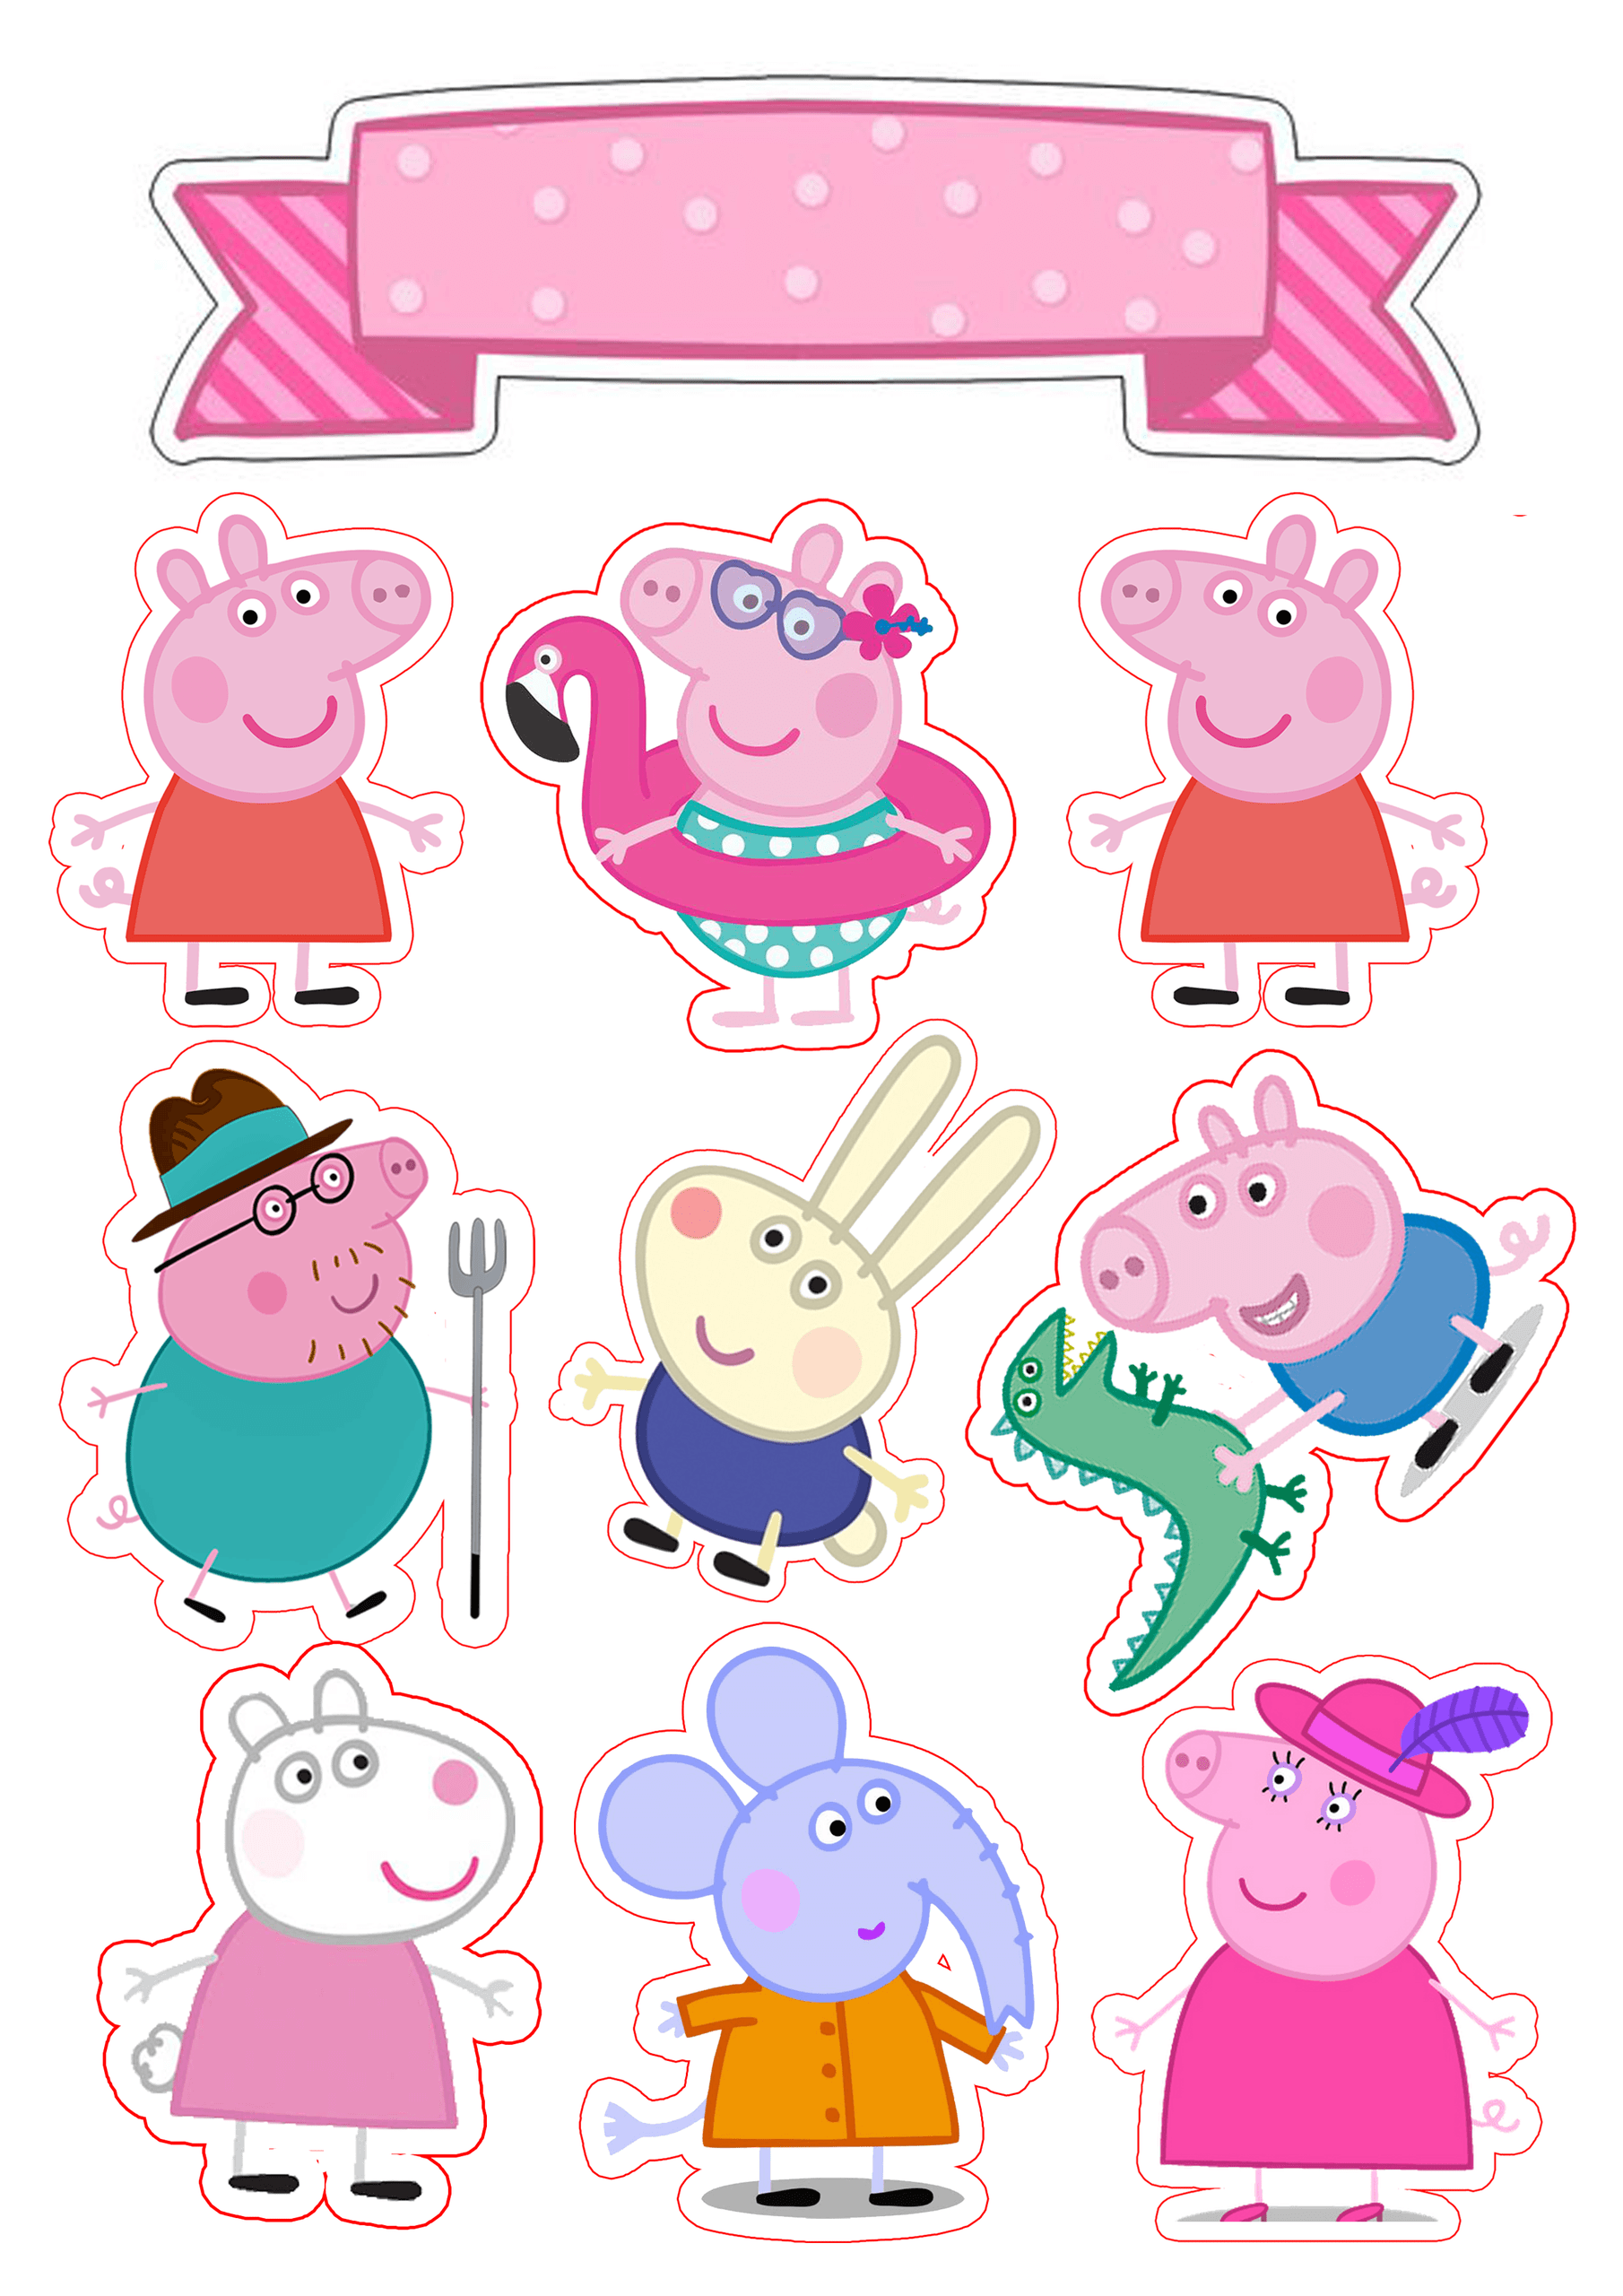 Peppa Pig Wallpaper: Peppa Pig Wallpapers Iphone X